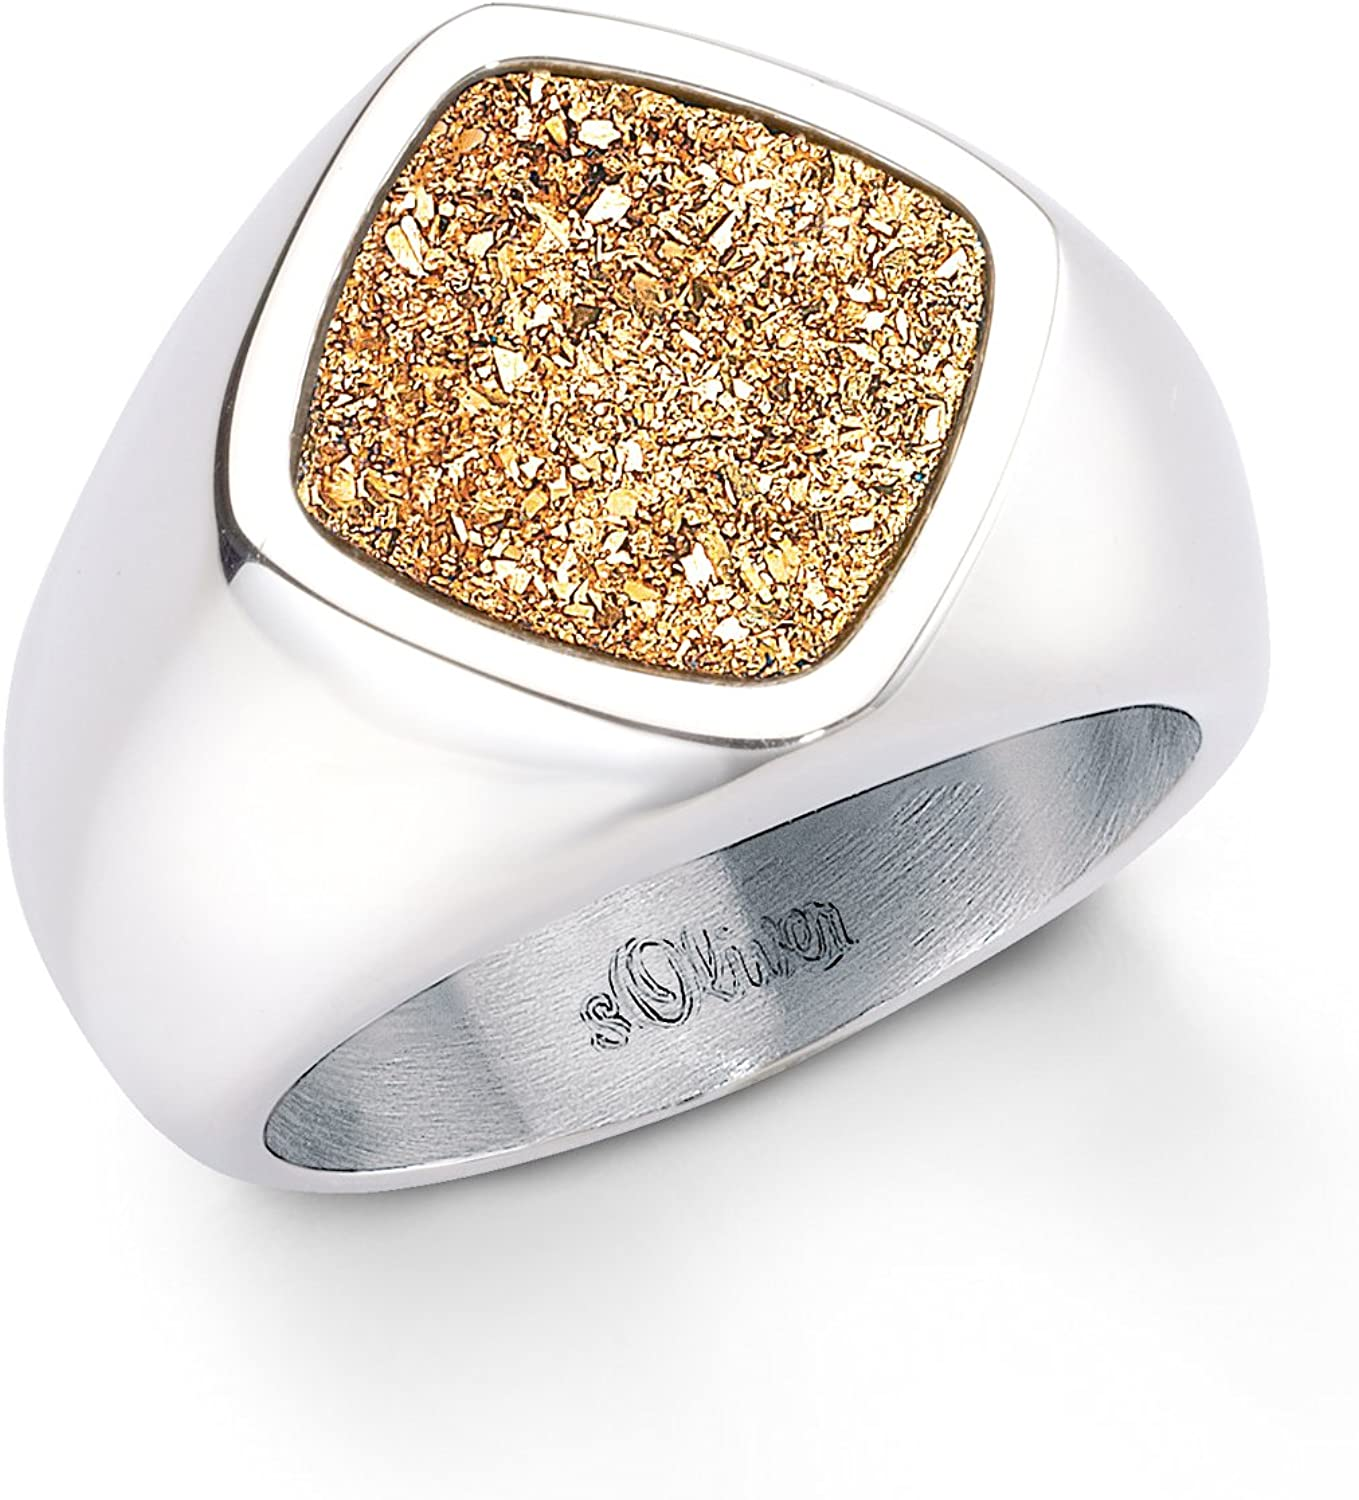 s.Oliver Jewels Herbst Winter Kollektion 2013 - Anillo de acero inoxidable con cuarzo, talla 18 (18,47 mm)